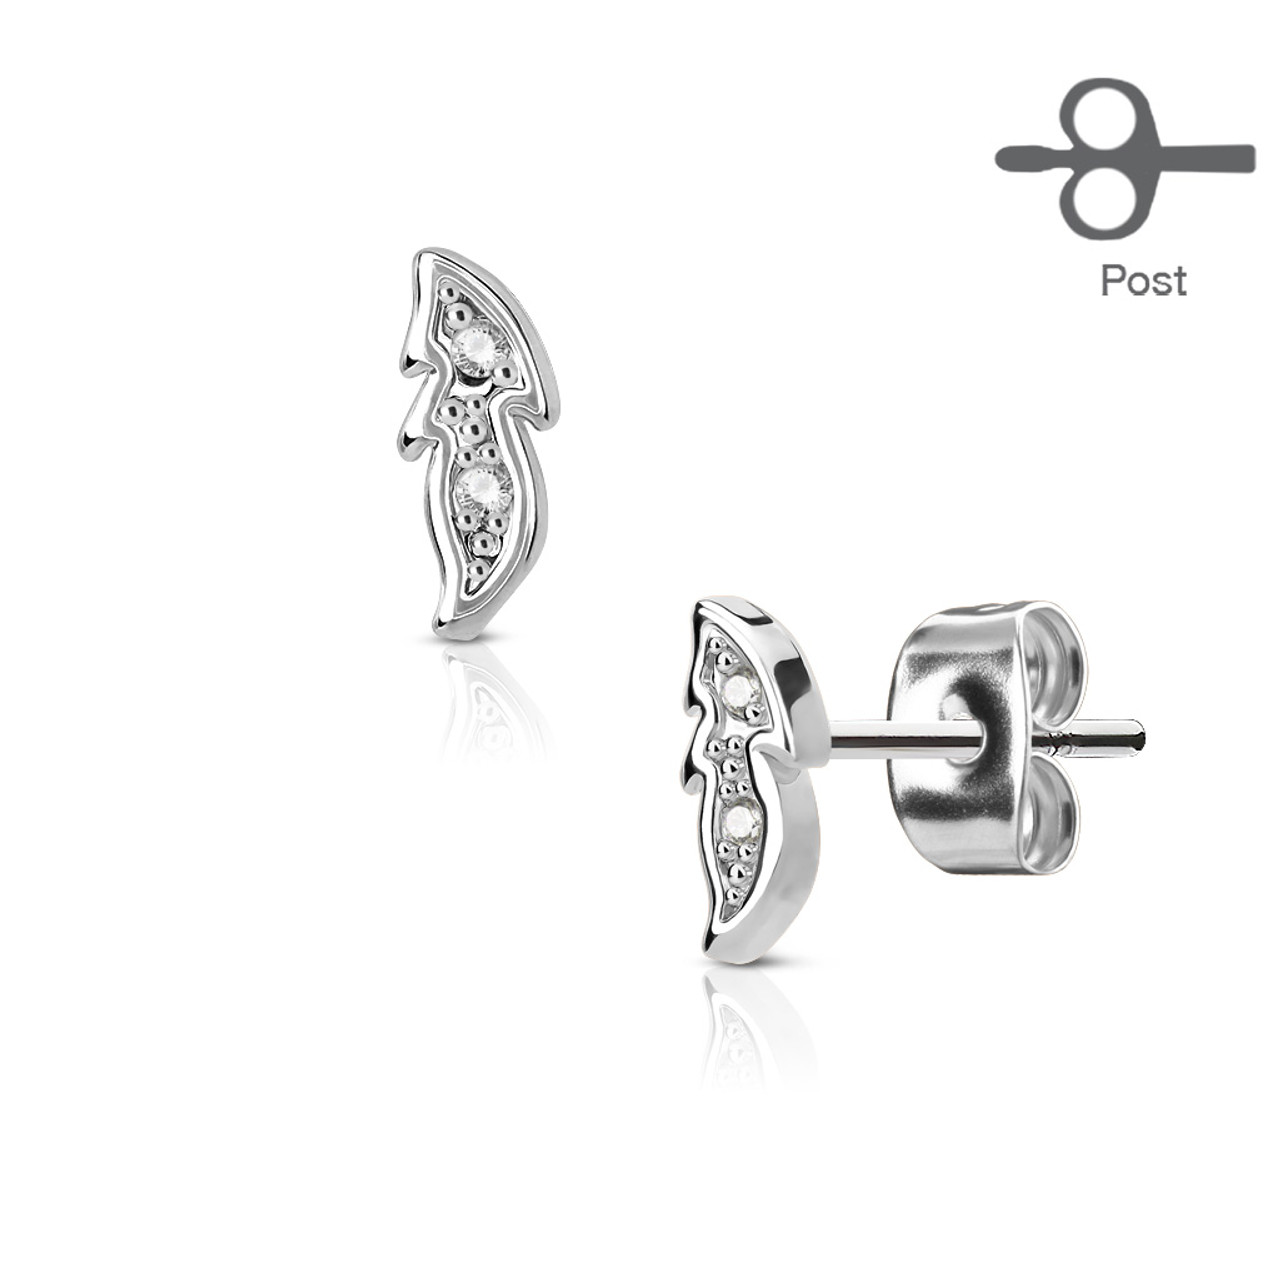 Pair of Hand Polished Music Clef surgical Stainless Steel Earring Studs